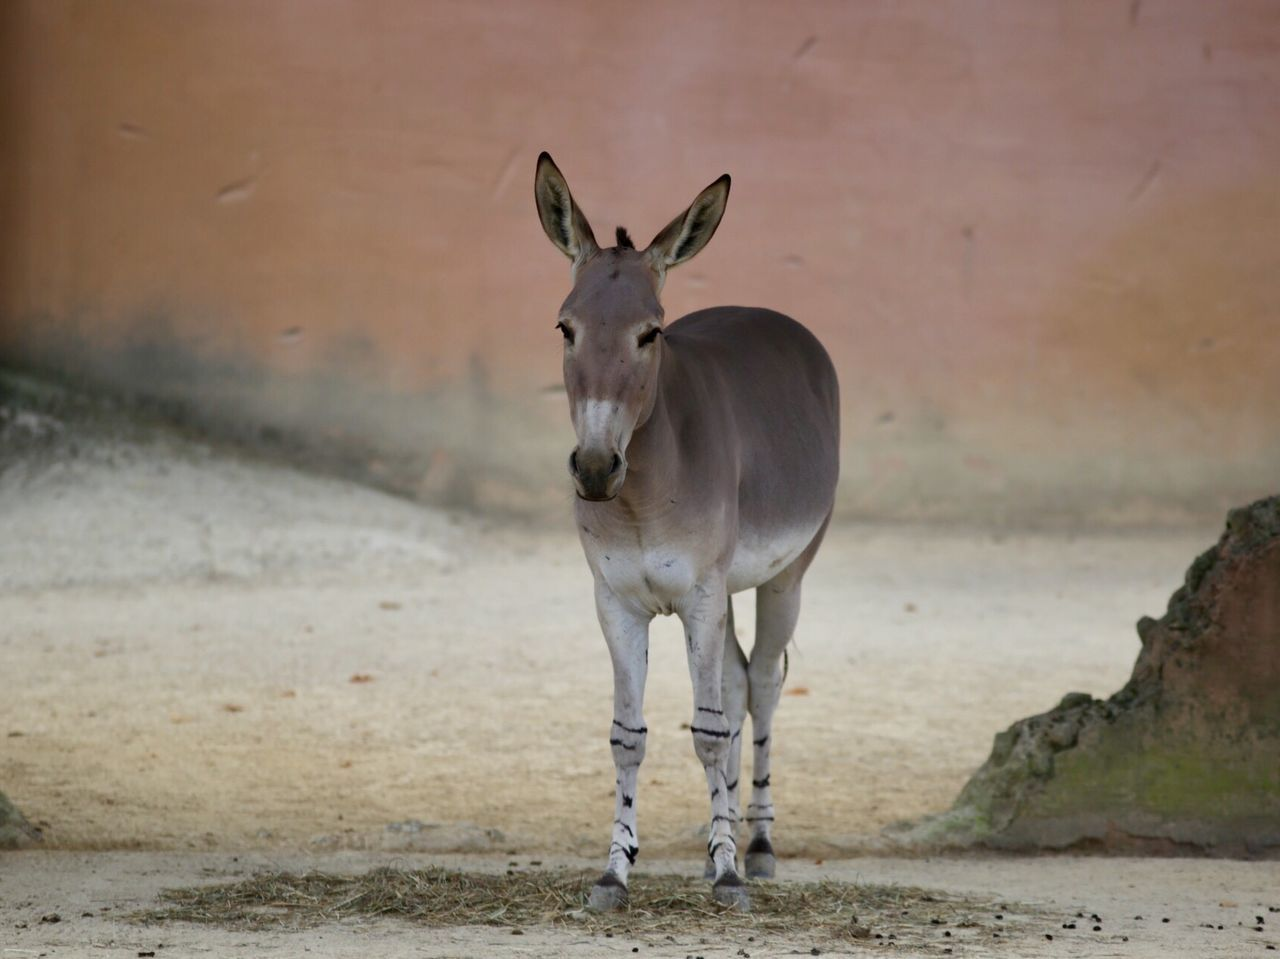 Africa Alone Animal Themes Animal# Animals In The Wild Beautiful Beauty In Nature Day Donkey Ears Focus Green Color Horse JACKASS Mammal Middle Nature No People One Animal Outdoors People Somali Somali Donke Somali Donkey